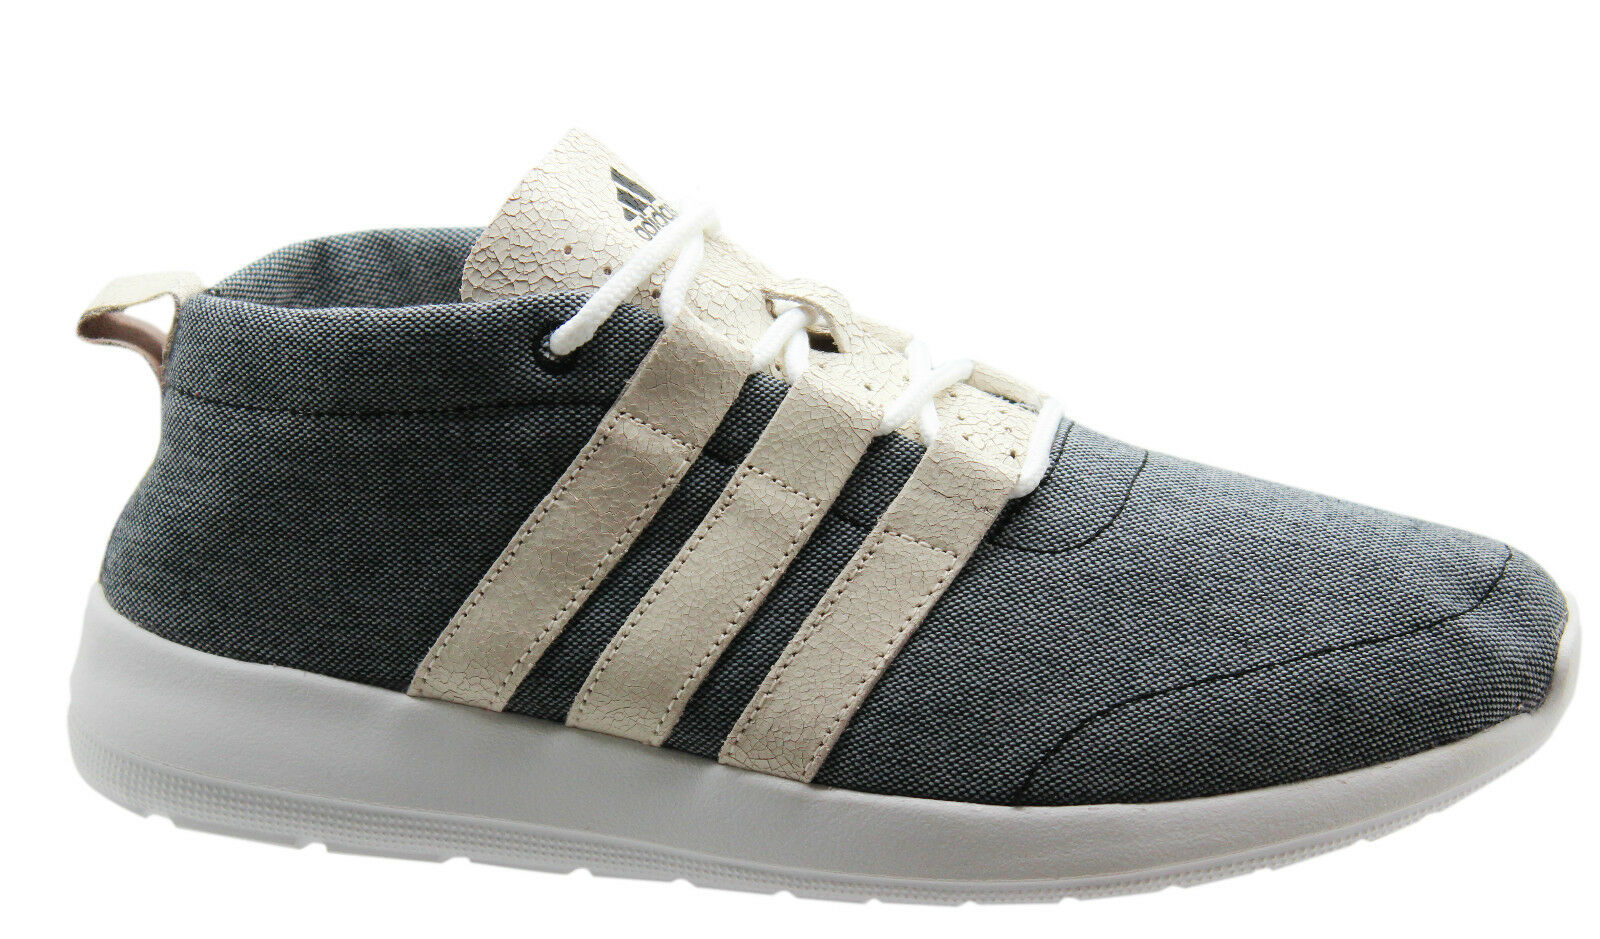 Adidas Sports Performance Element Turnschuhe Voyager 2.1 Herren canavs Turnschuhe Element b39776 d3ef6b